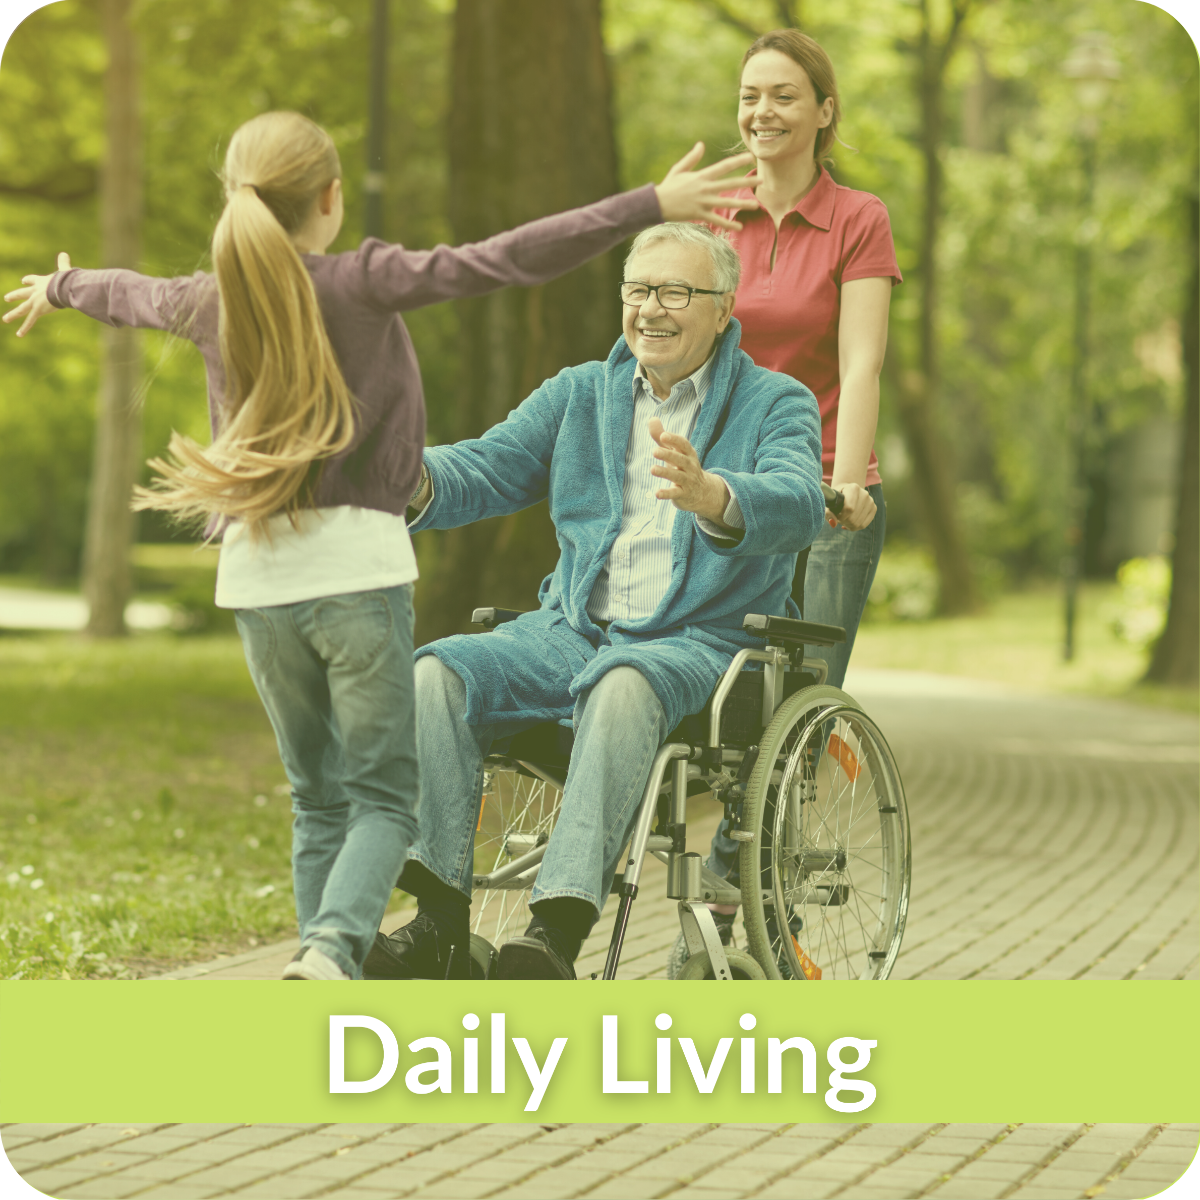 NDIS Consumables & Assistive Technology - Daily Living Aids